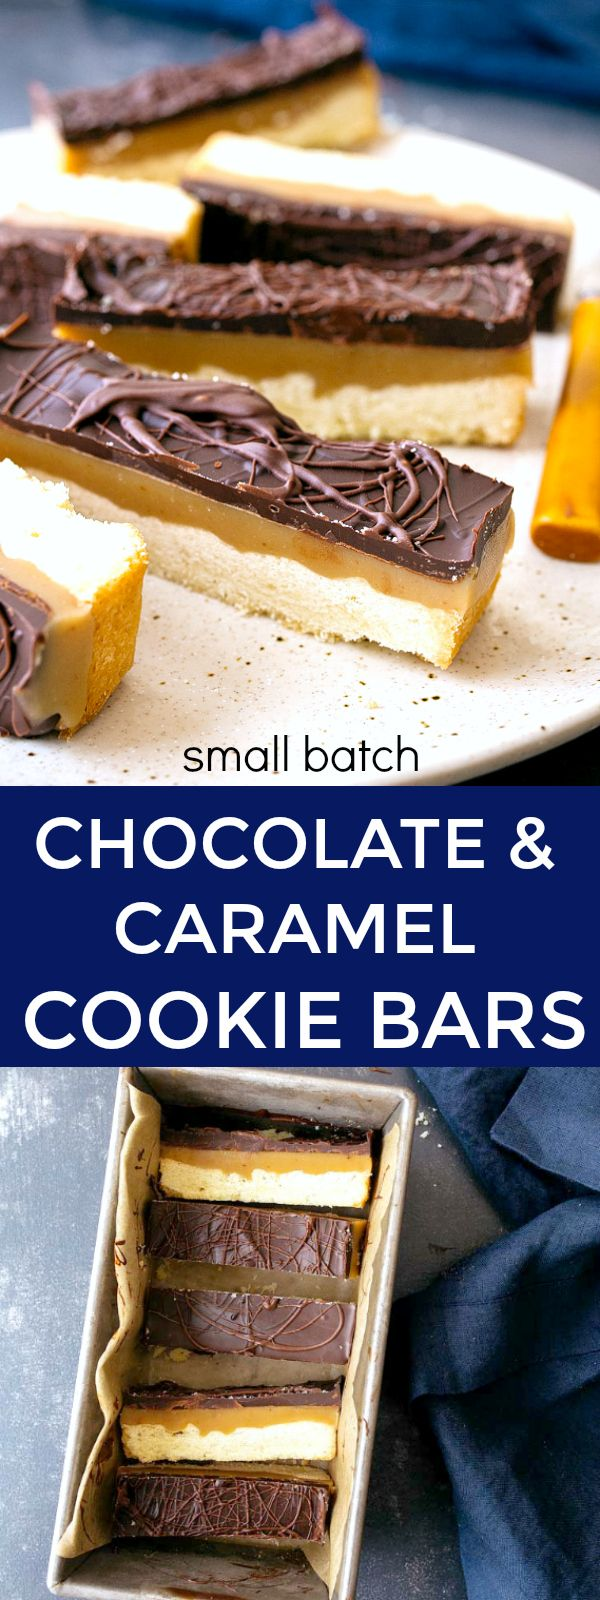 Chocolate and Caramel Cookie Bars | Posted By: DebbieNet.com